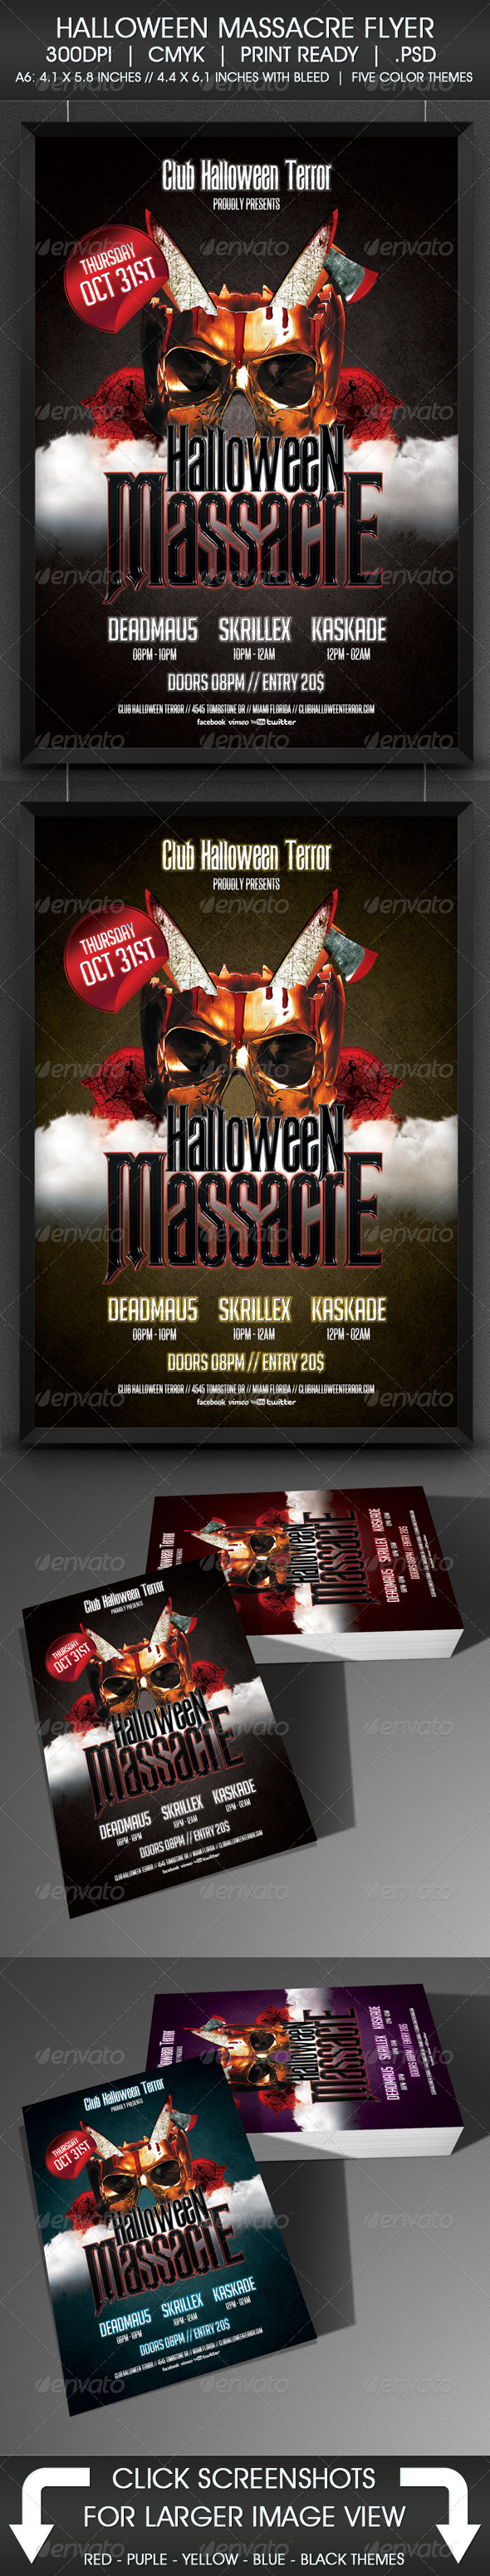 Halloween Massacre Flyer - Print Templates